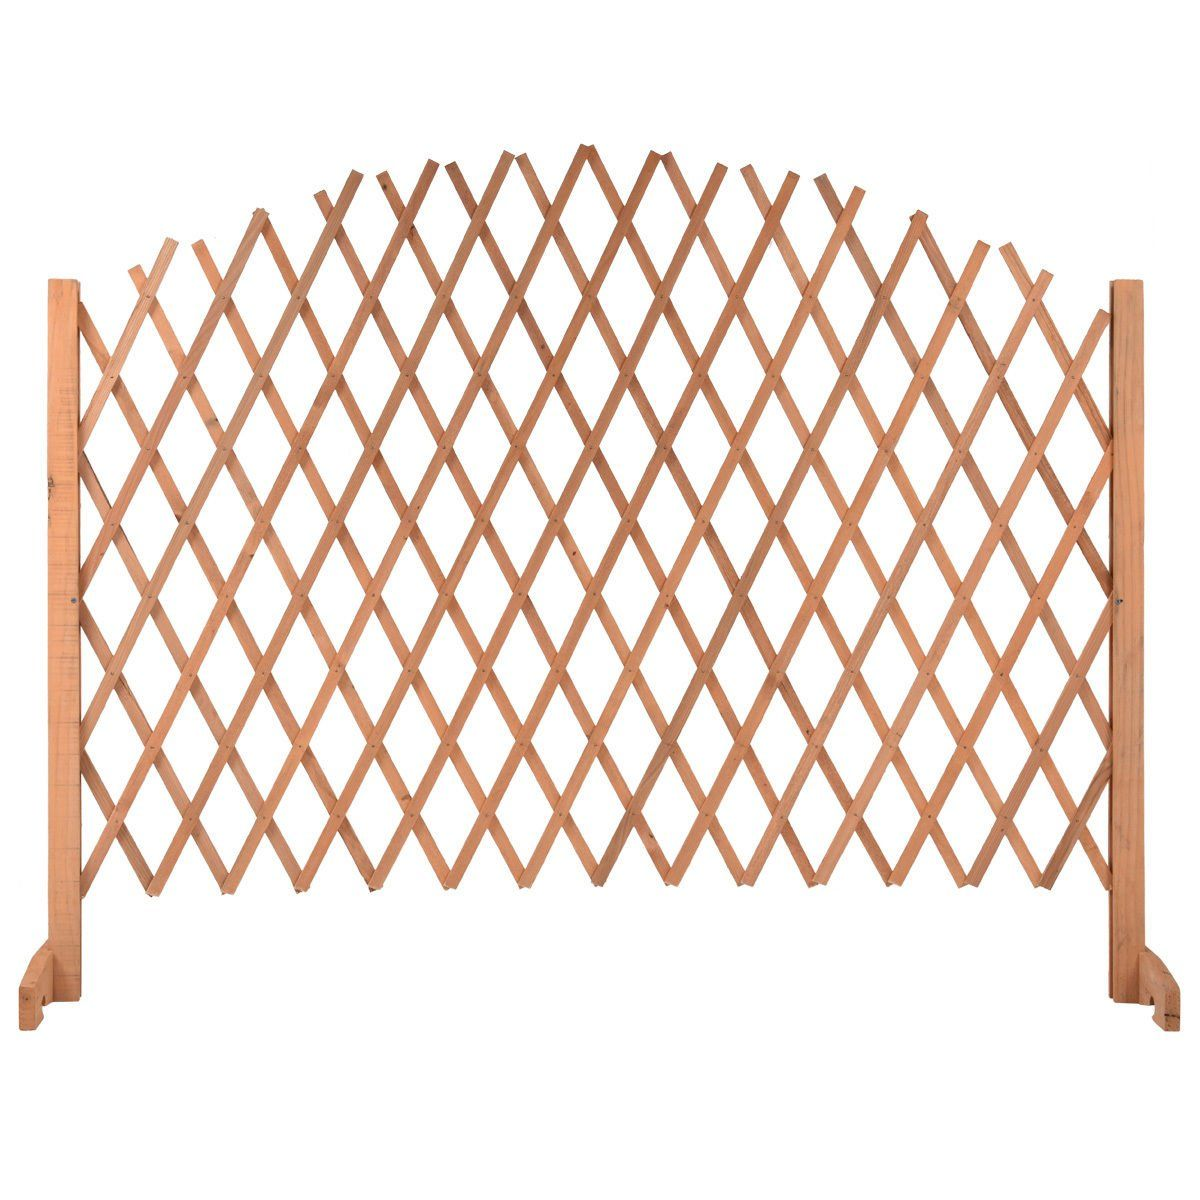 expanding portable fence wooden screen